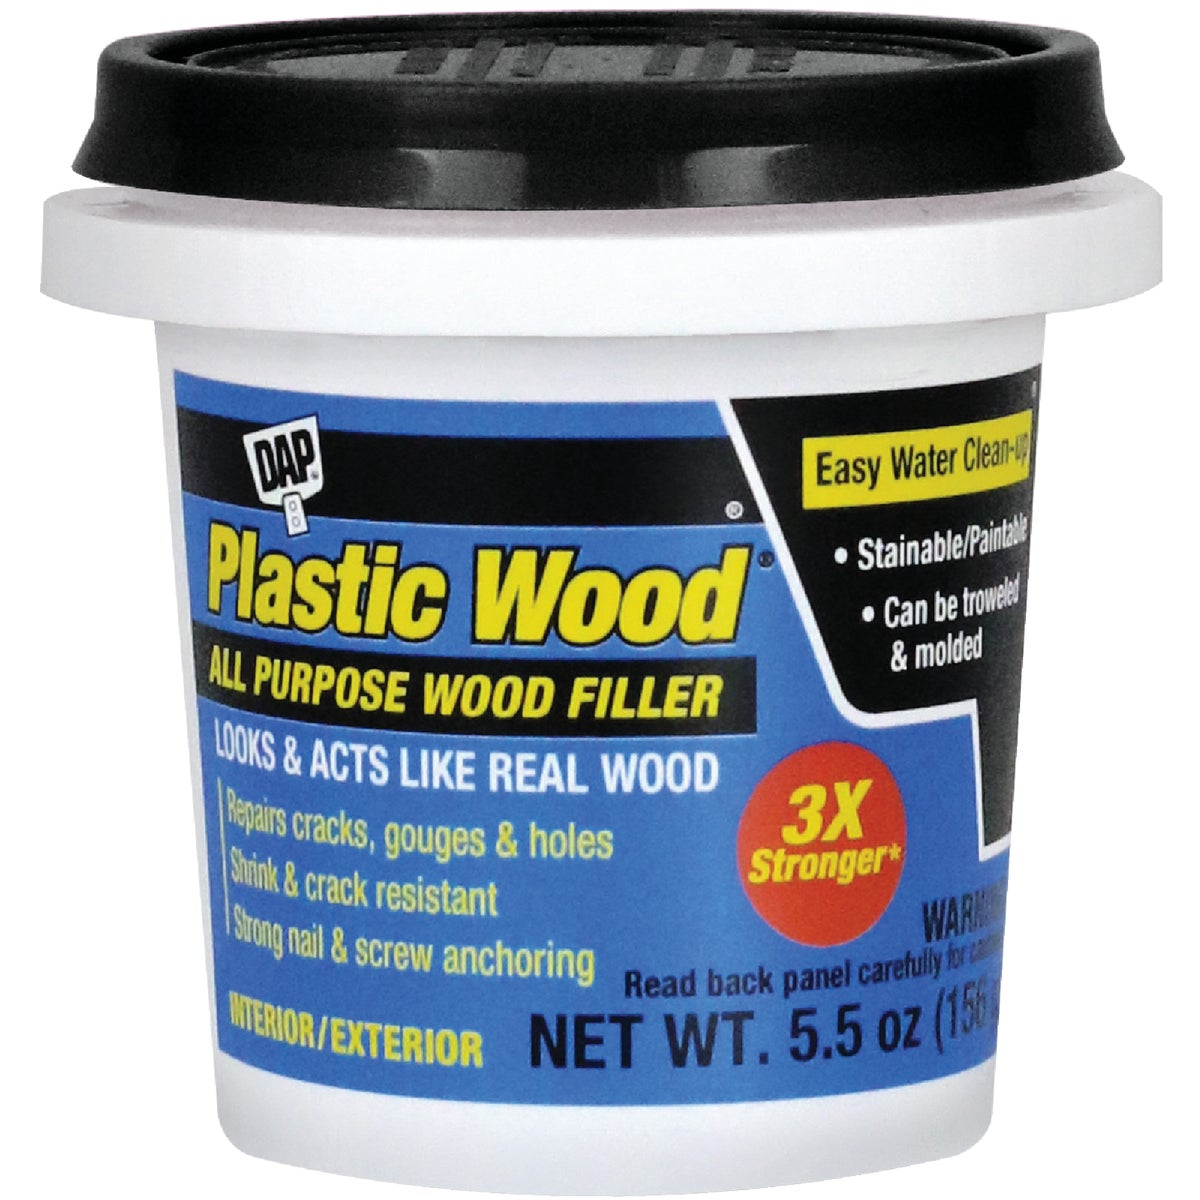 1/4PT LATEX PLASTIC WOOD